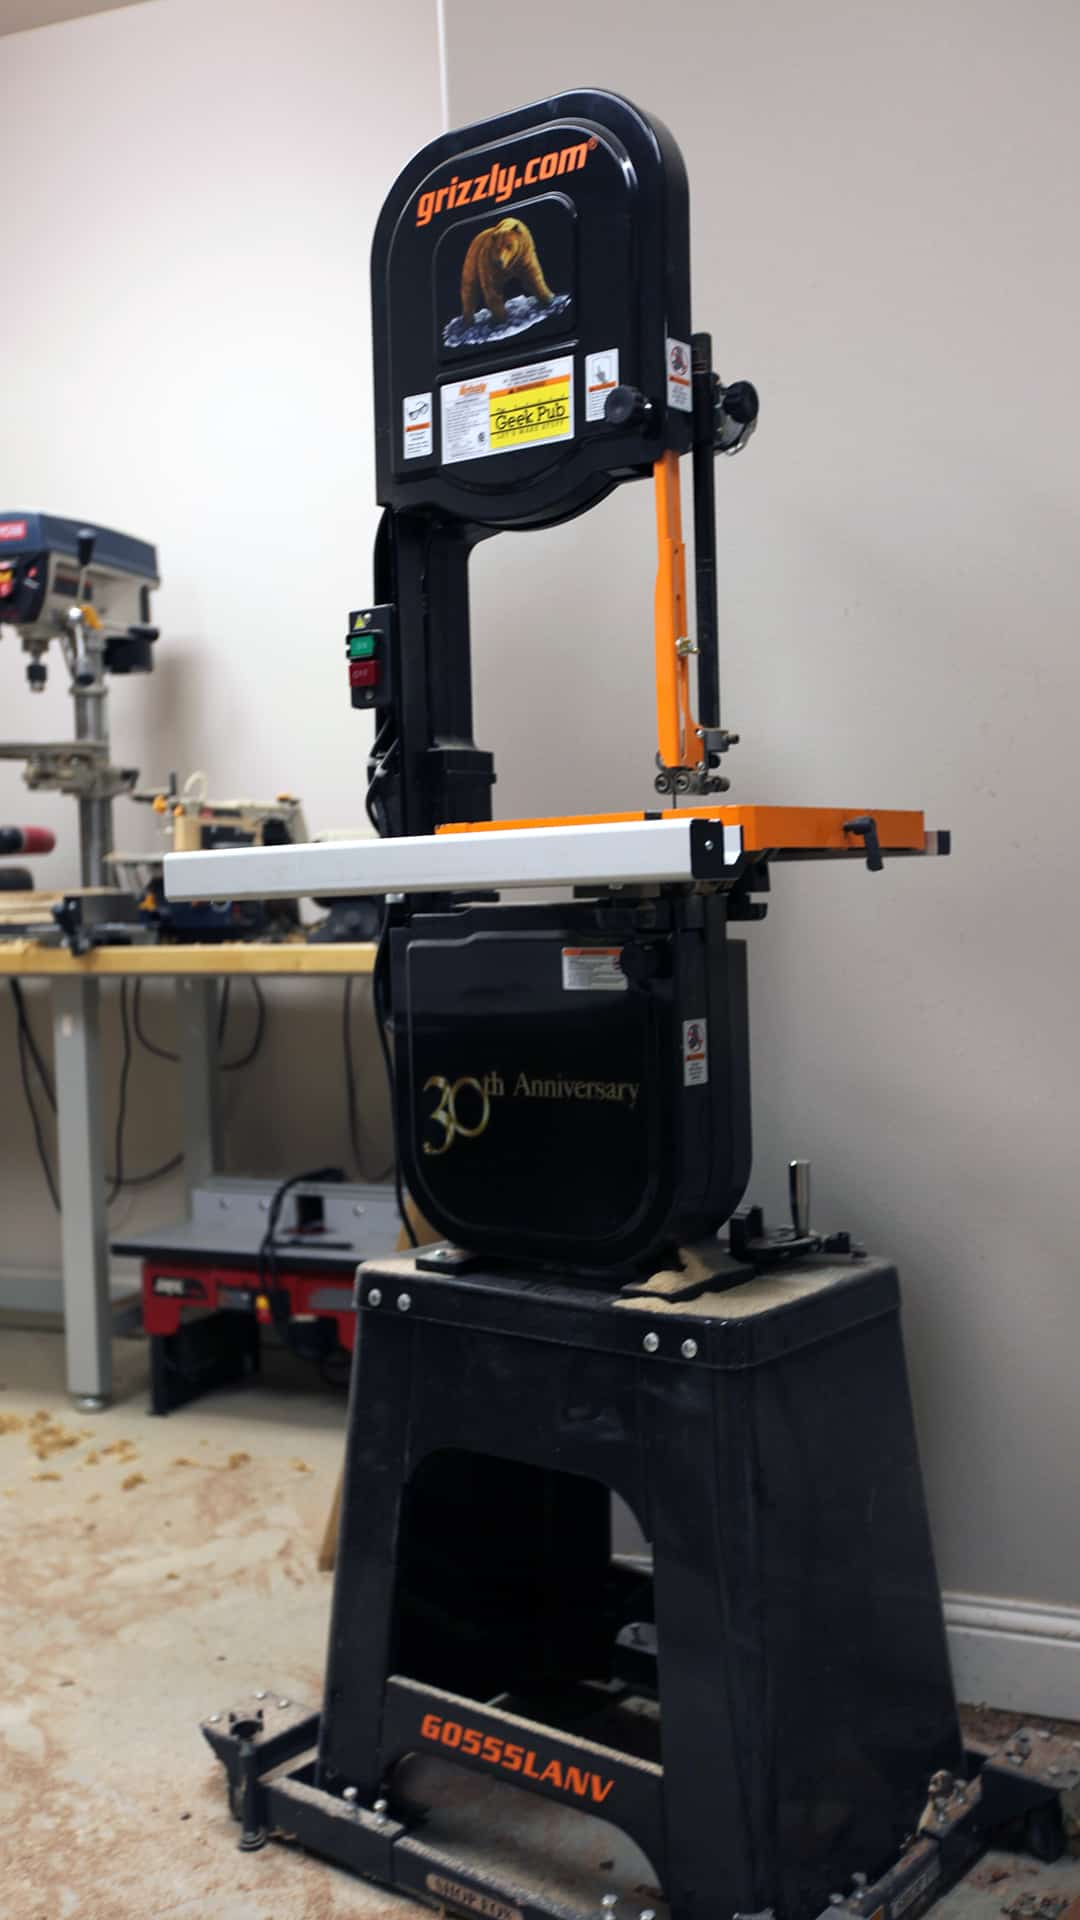 May 30, · Find helpful customer reviews and review ratings for Grizzly G Variable Speed Wood Lathe, 16 x Inch at uctergiyfon.gq Read honest and unbiased product reviews from our users.